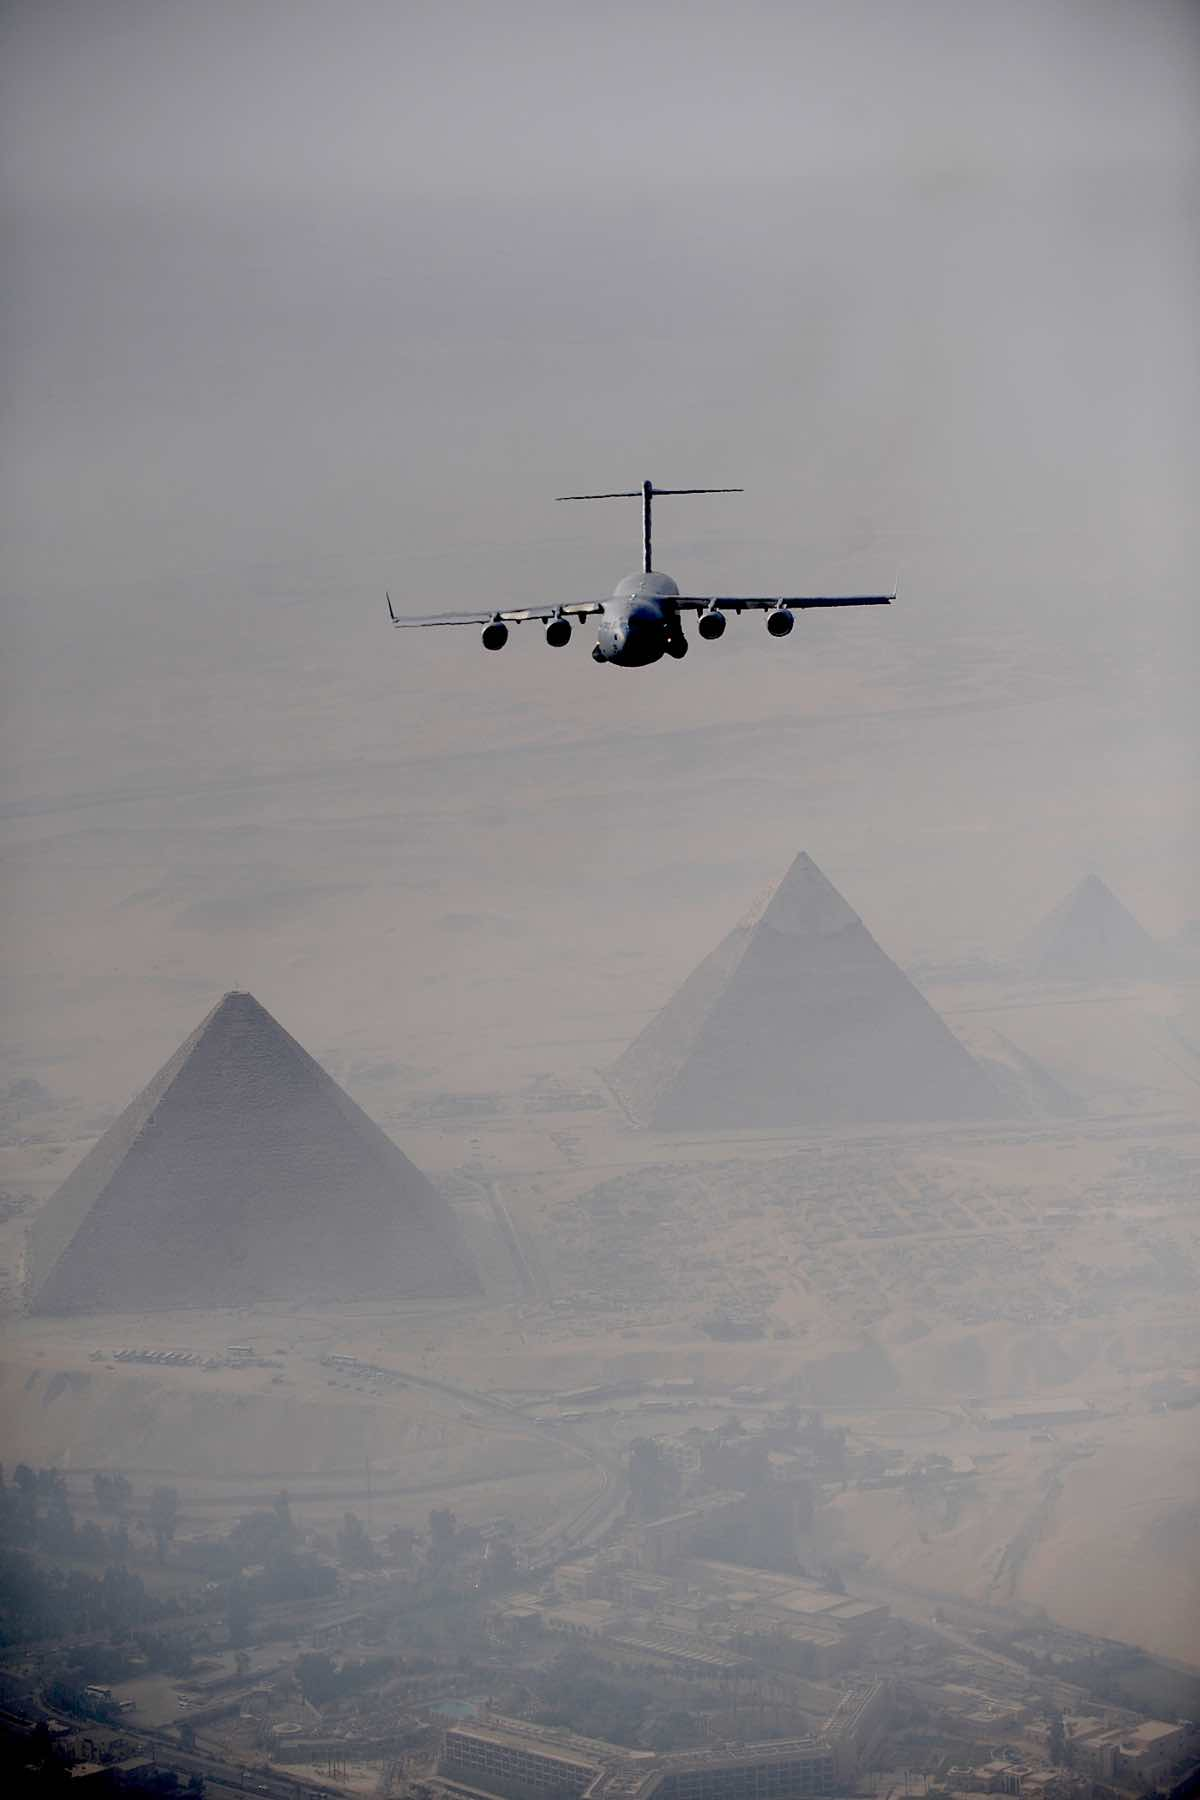 C-17 over Pyramids, C-17 Facts